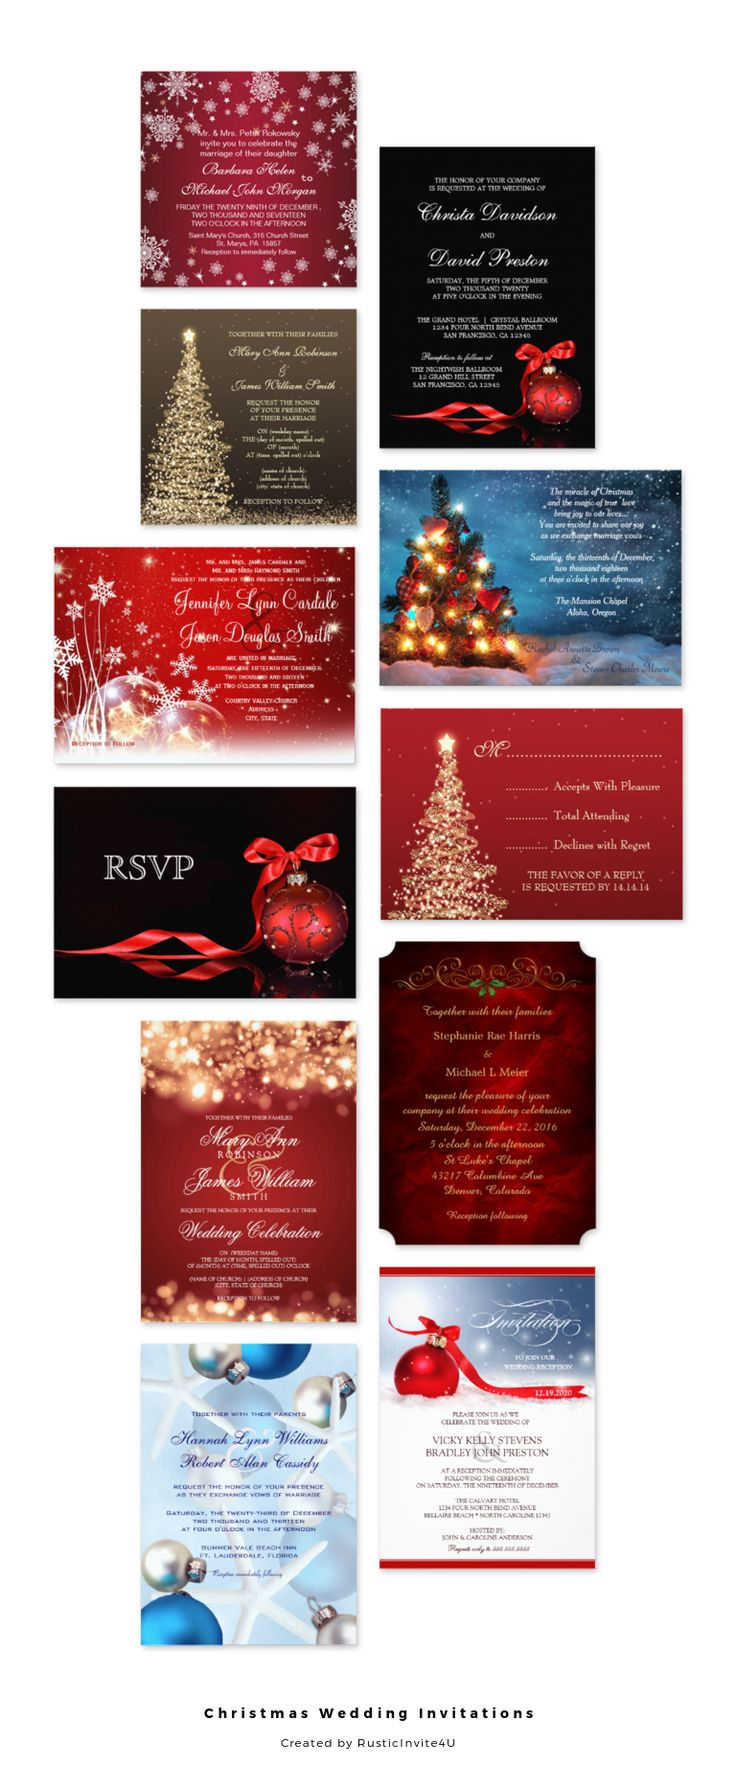 34 best Wedding Invitations images on Pinterest | Invites, Marriage ...